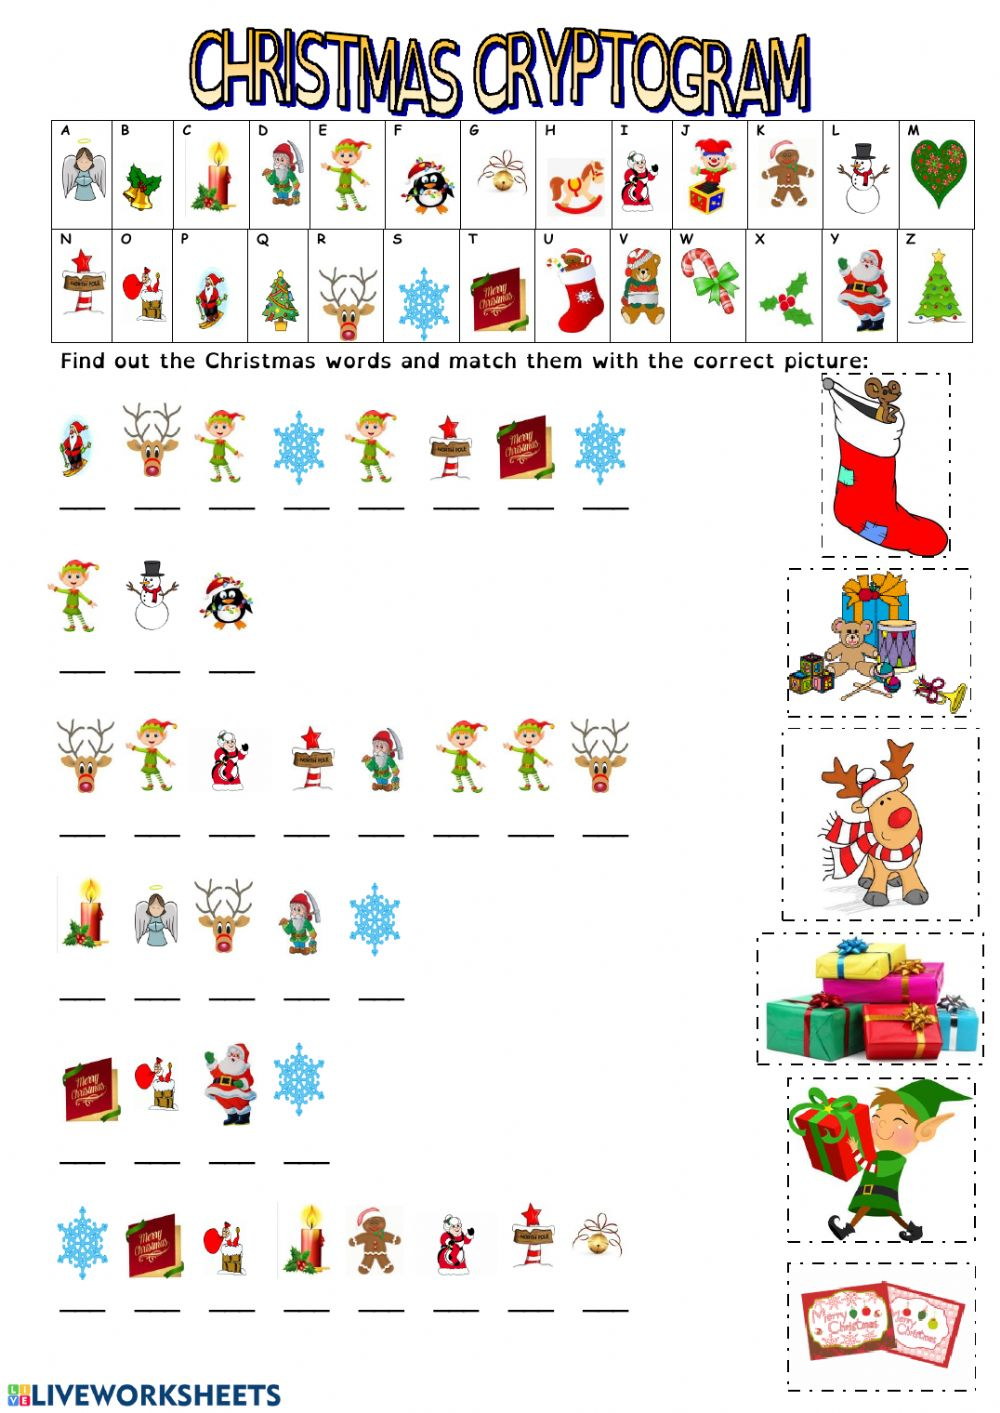 christmas cryptogram interactive worksheet